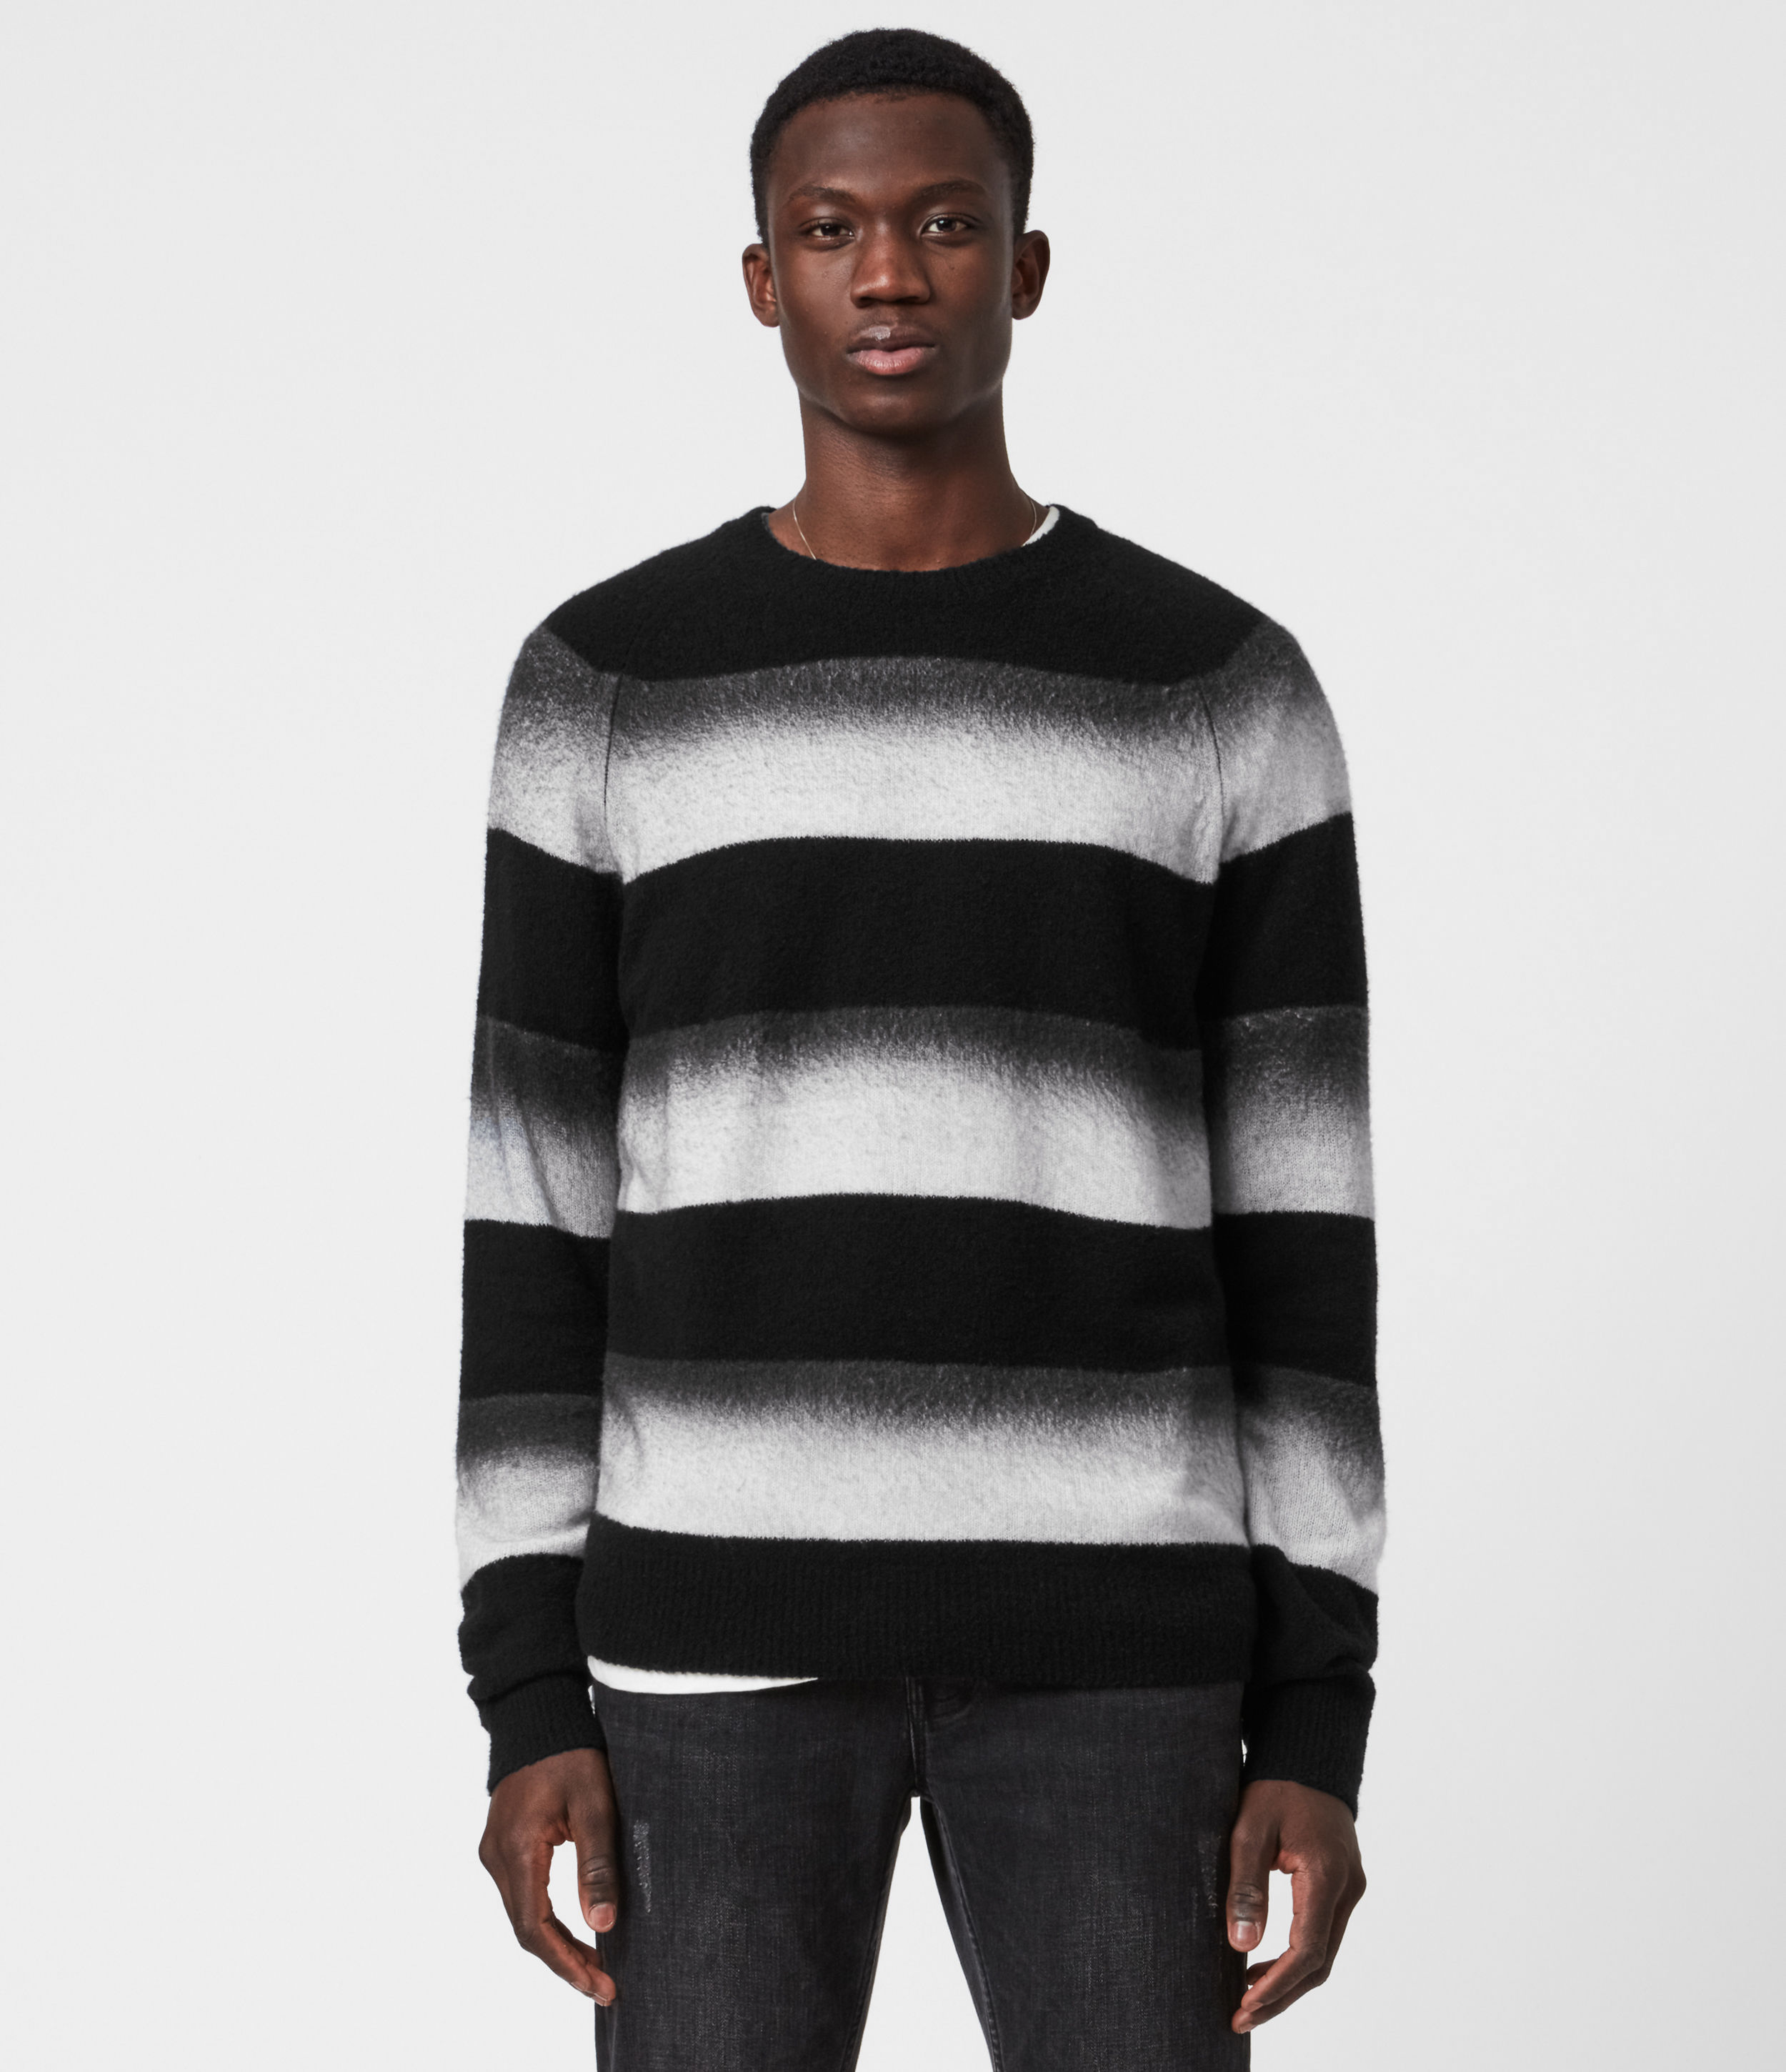 AllSaints Men's Wool Striped Relaxed Fit Arbour Fade Crew Neck Jumper, Black and Grey, Size: L